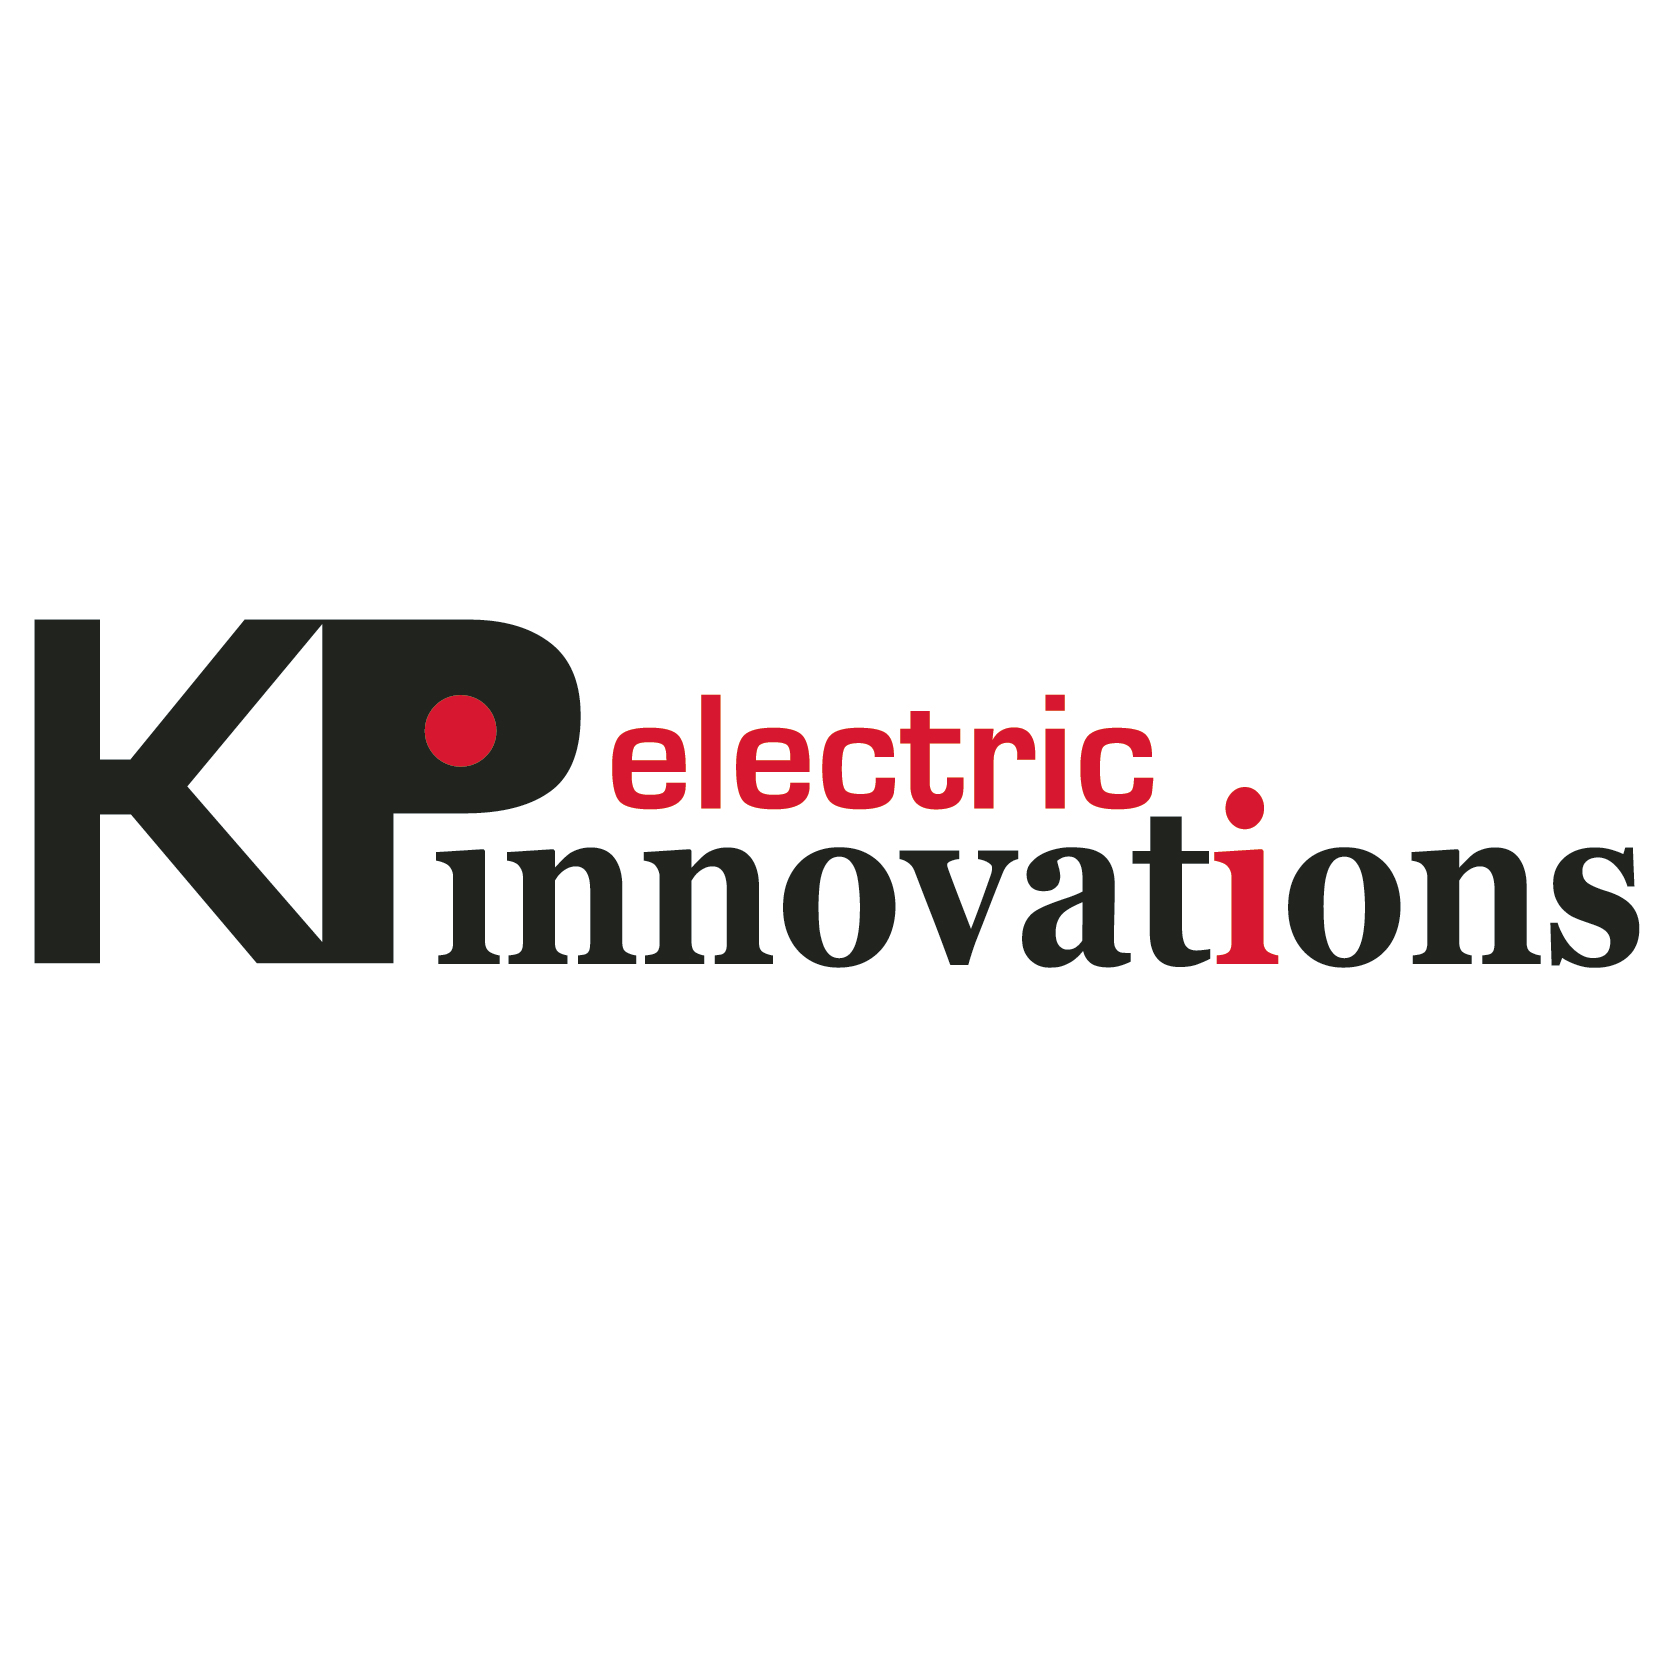 image of K P Electric Innovations